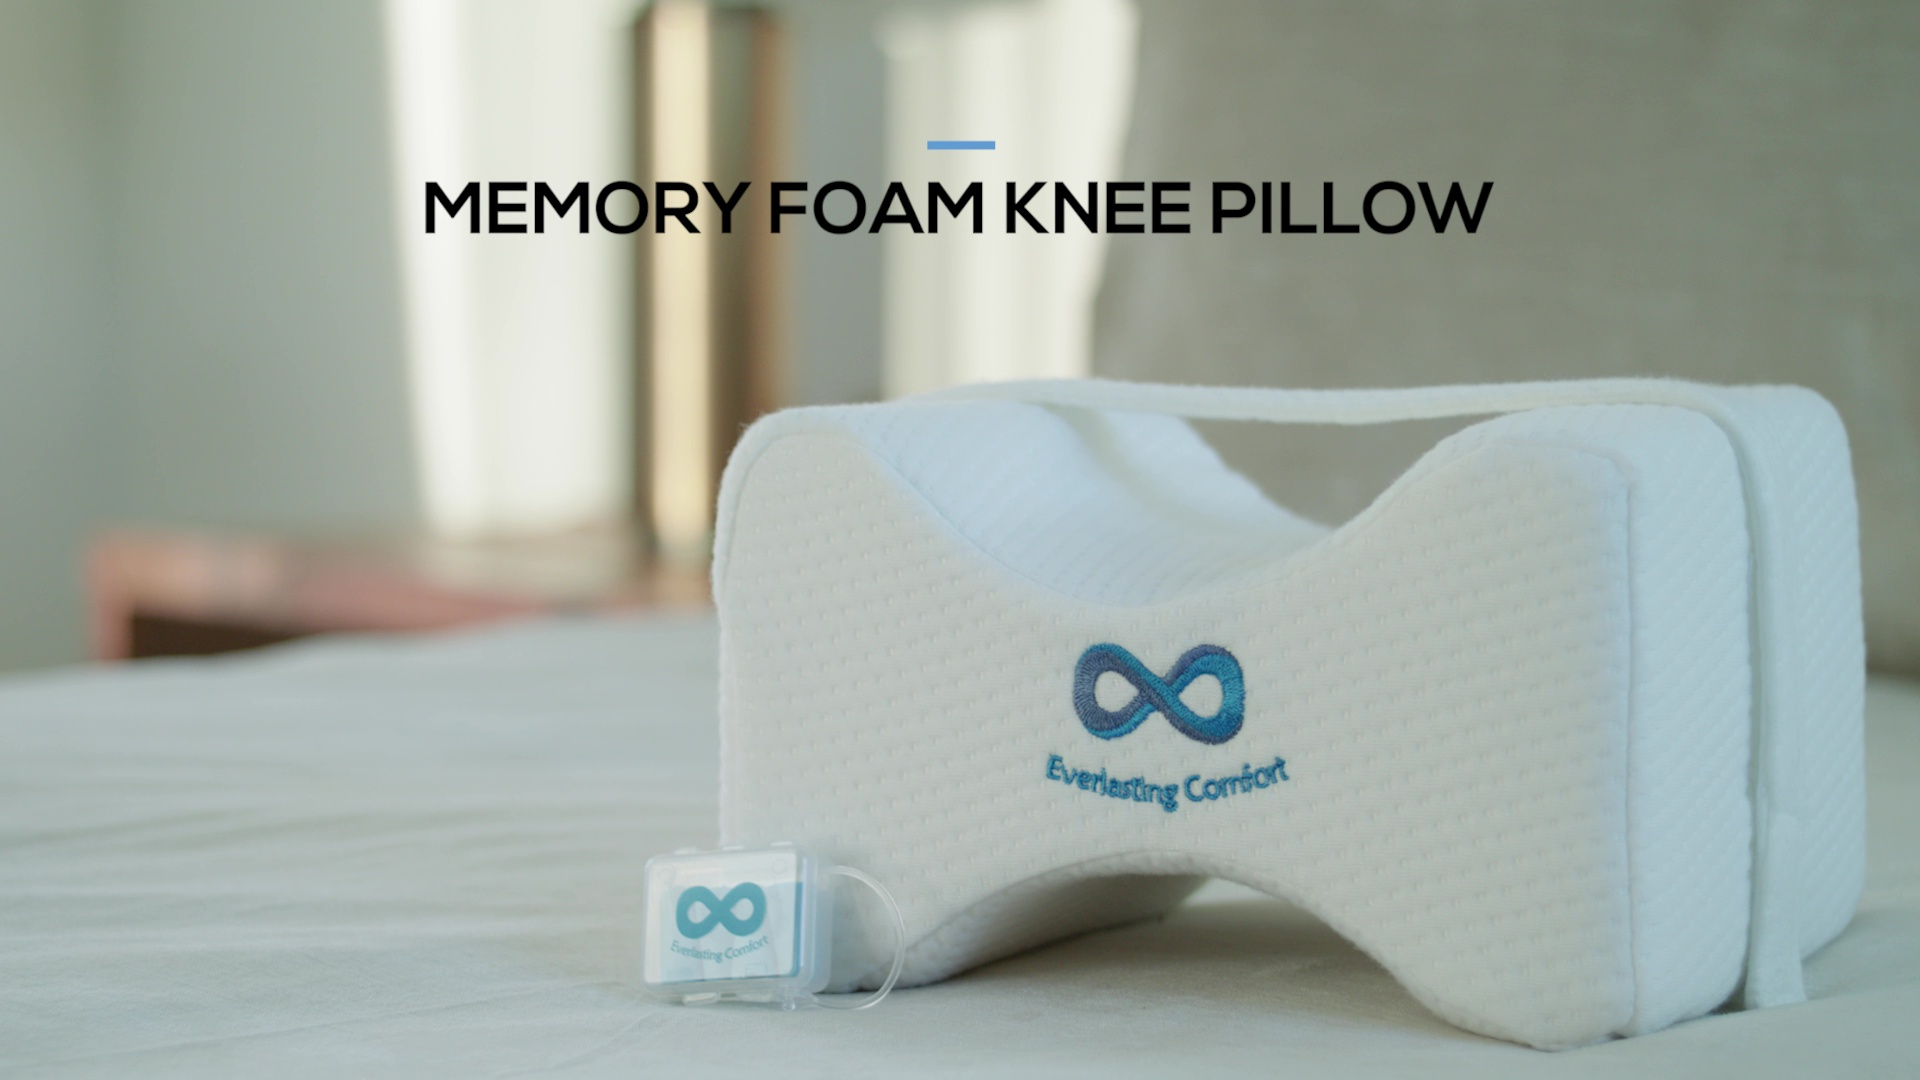 Everlasting Comfort 100% Pure Memory Foam Knee Pillow with Adjustable & Removable Strap and Ear Plugs - Leg Pillow for Sleeping (Lifetime Warranty)